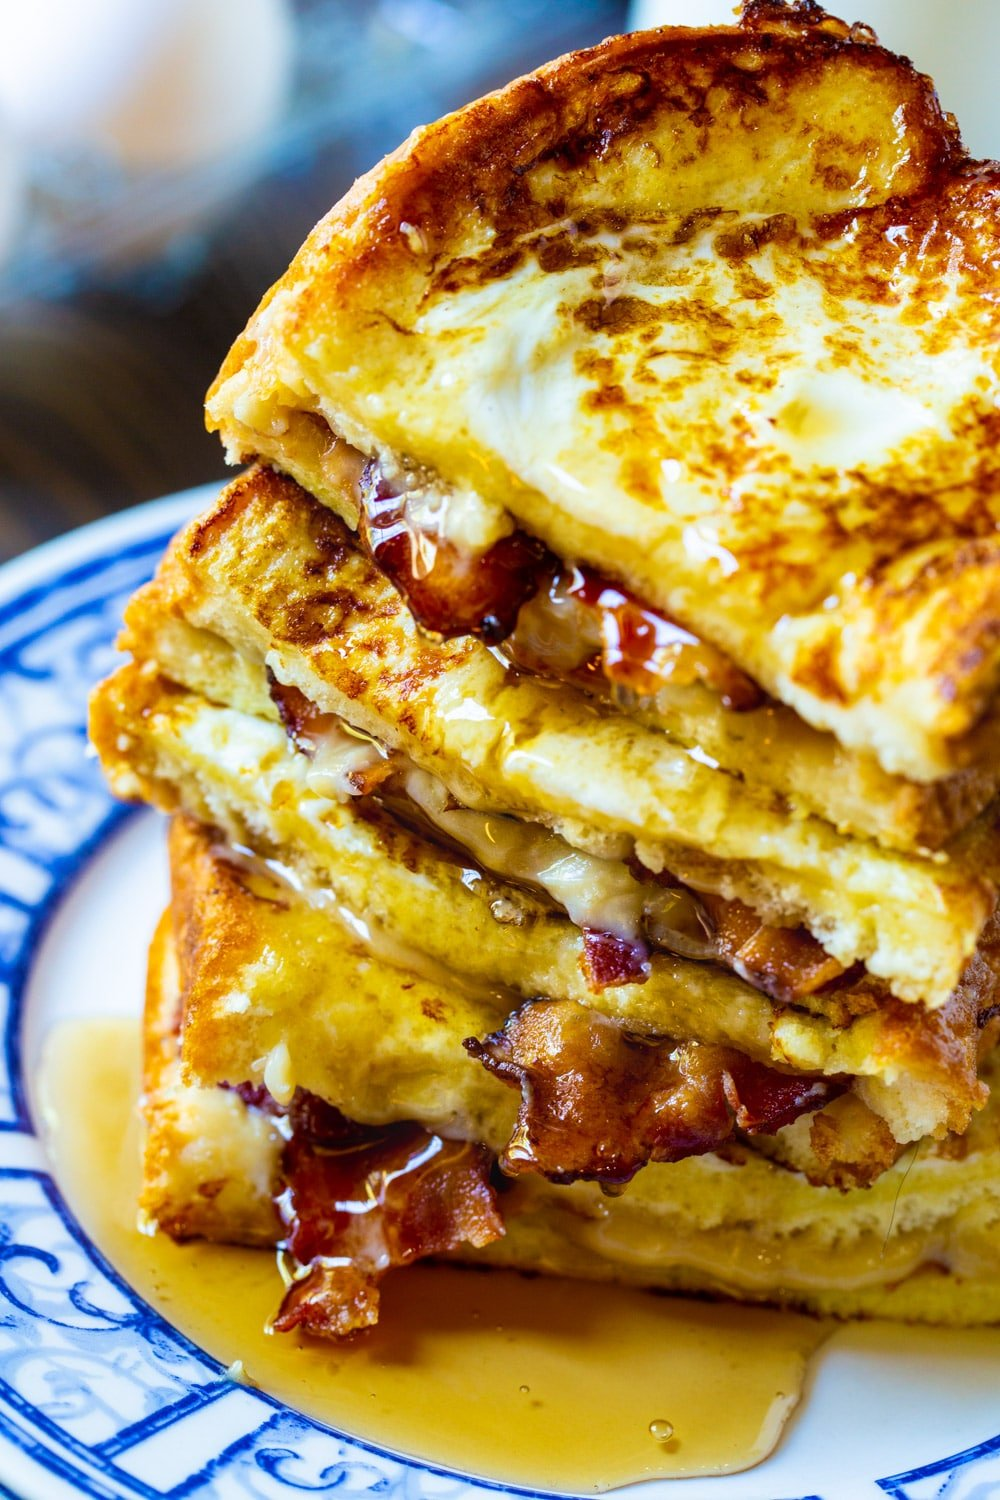 French Toast Stuffed with Bacon piled up with syrup dripping down.